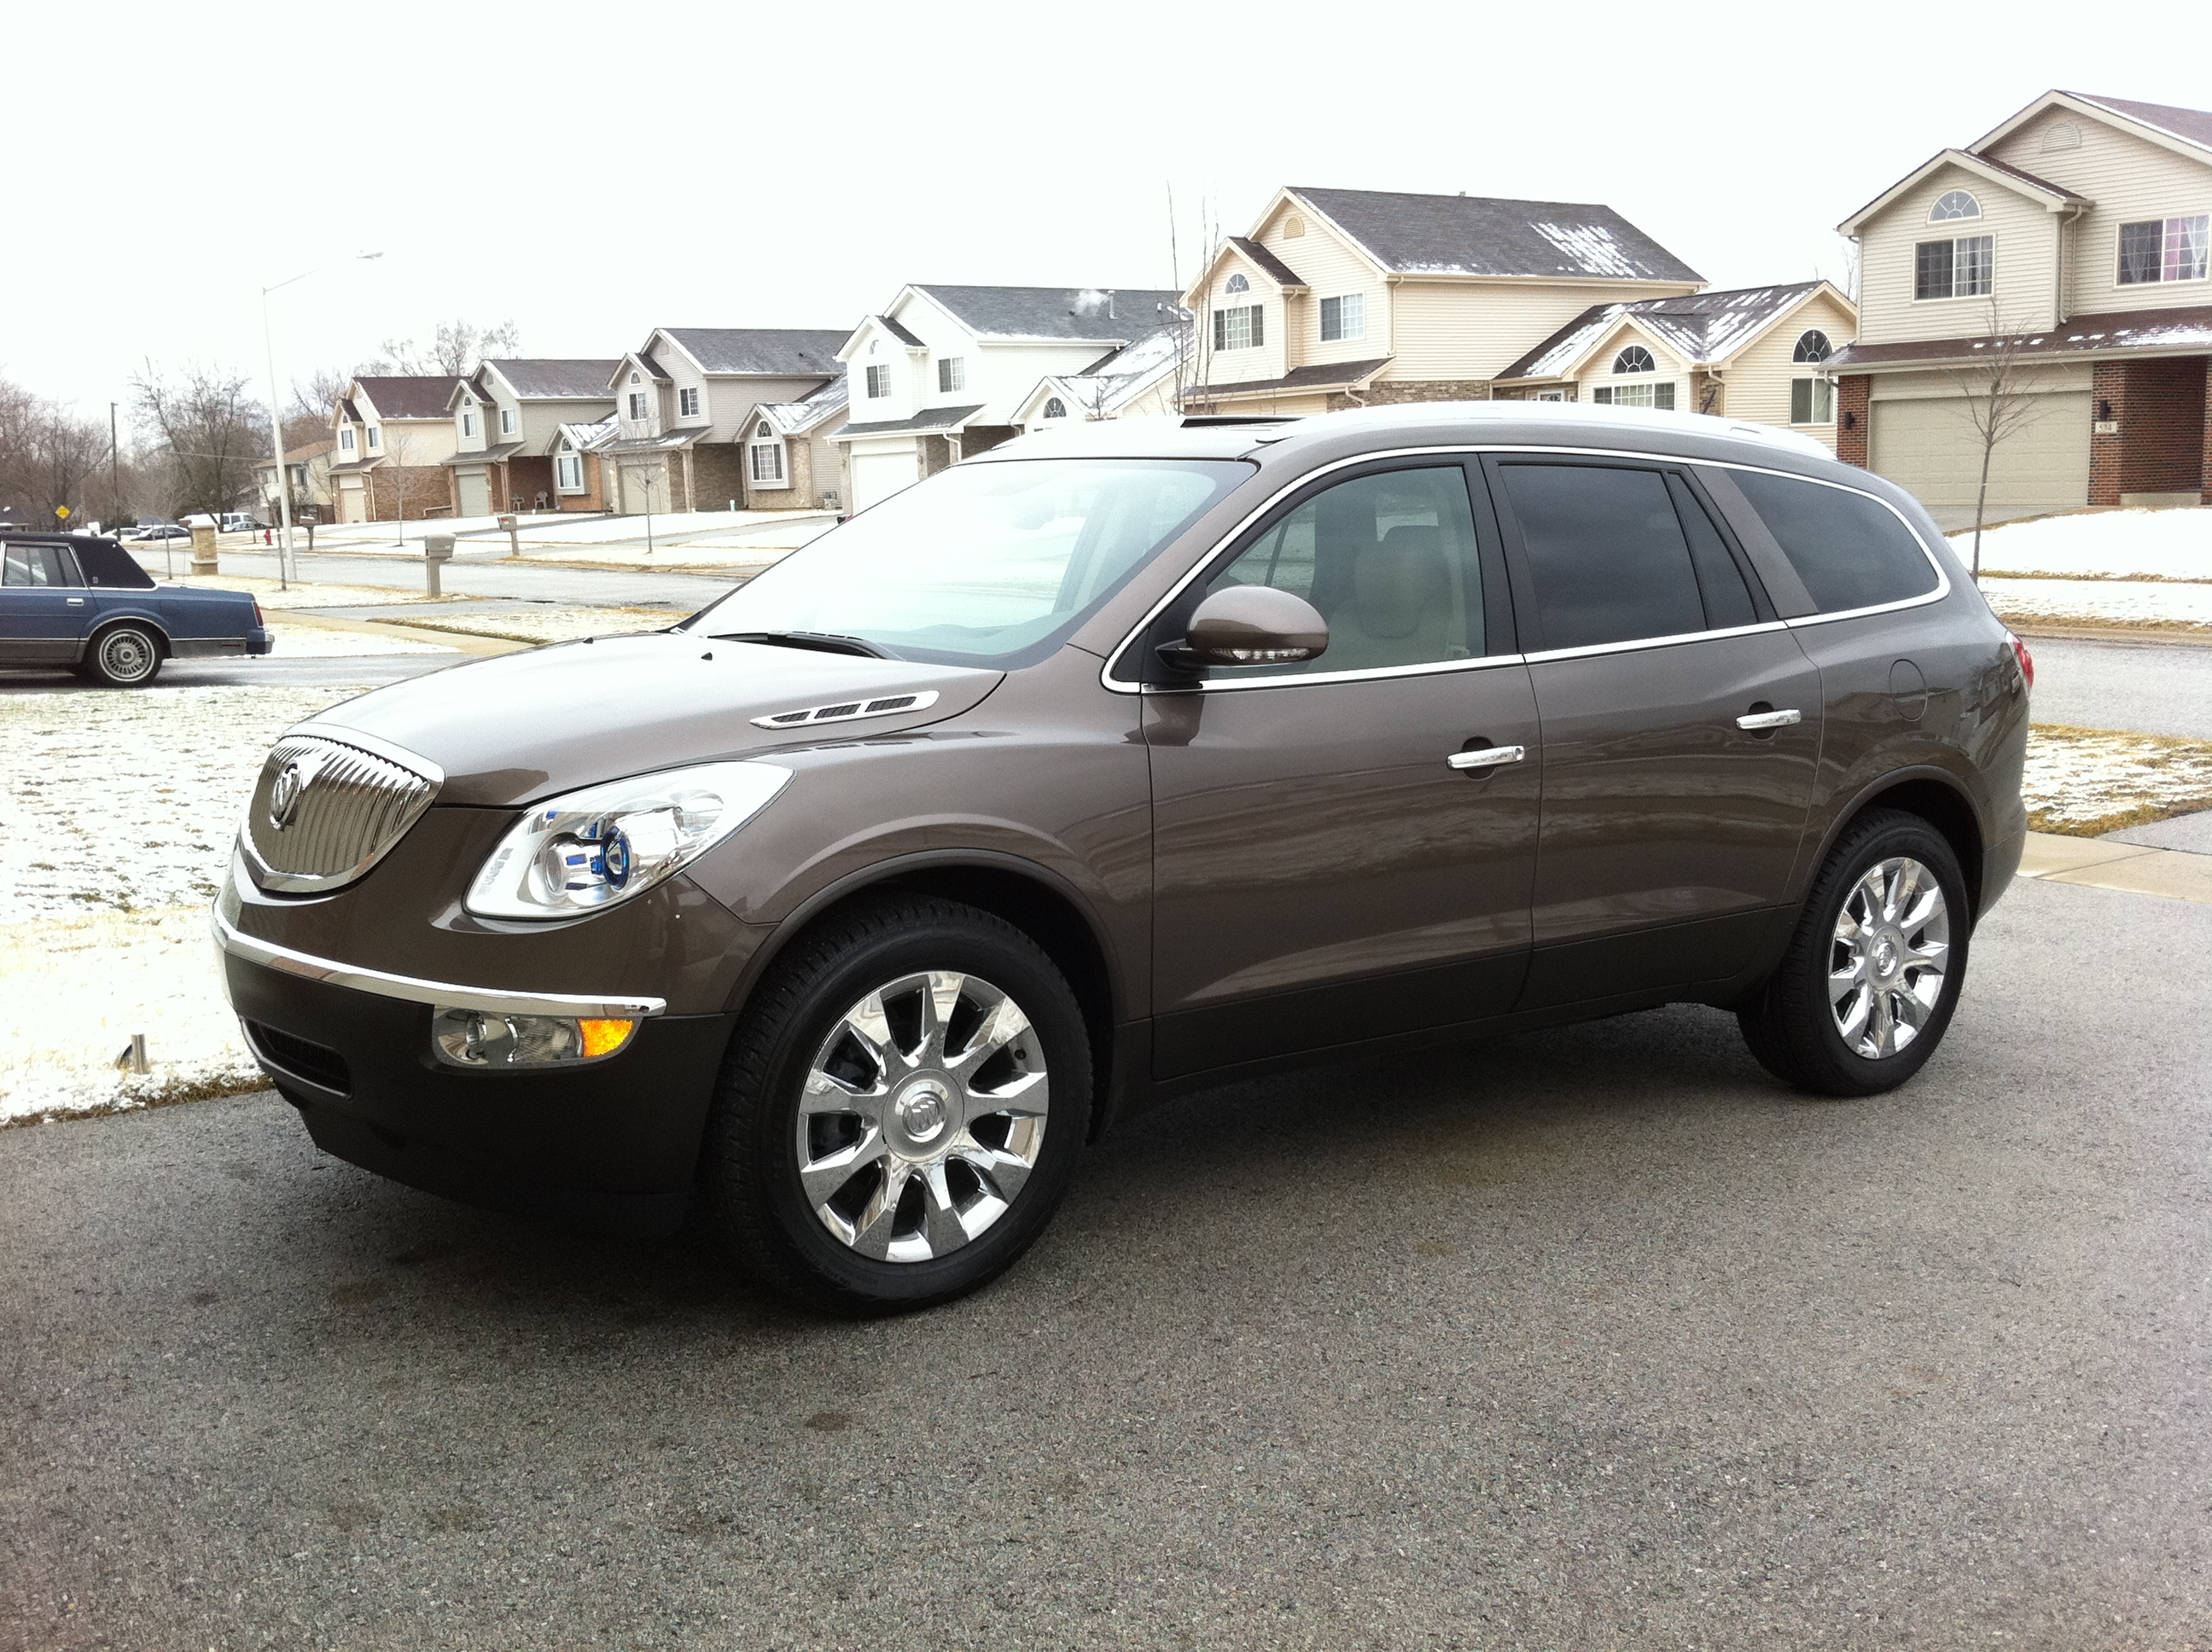 Shedding the Mommy Mobile for a Buick Enclave?